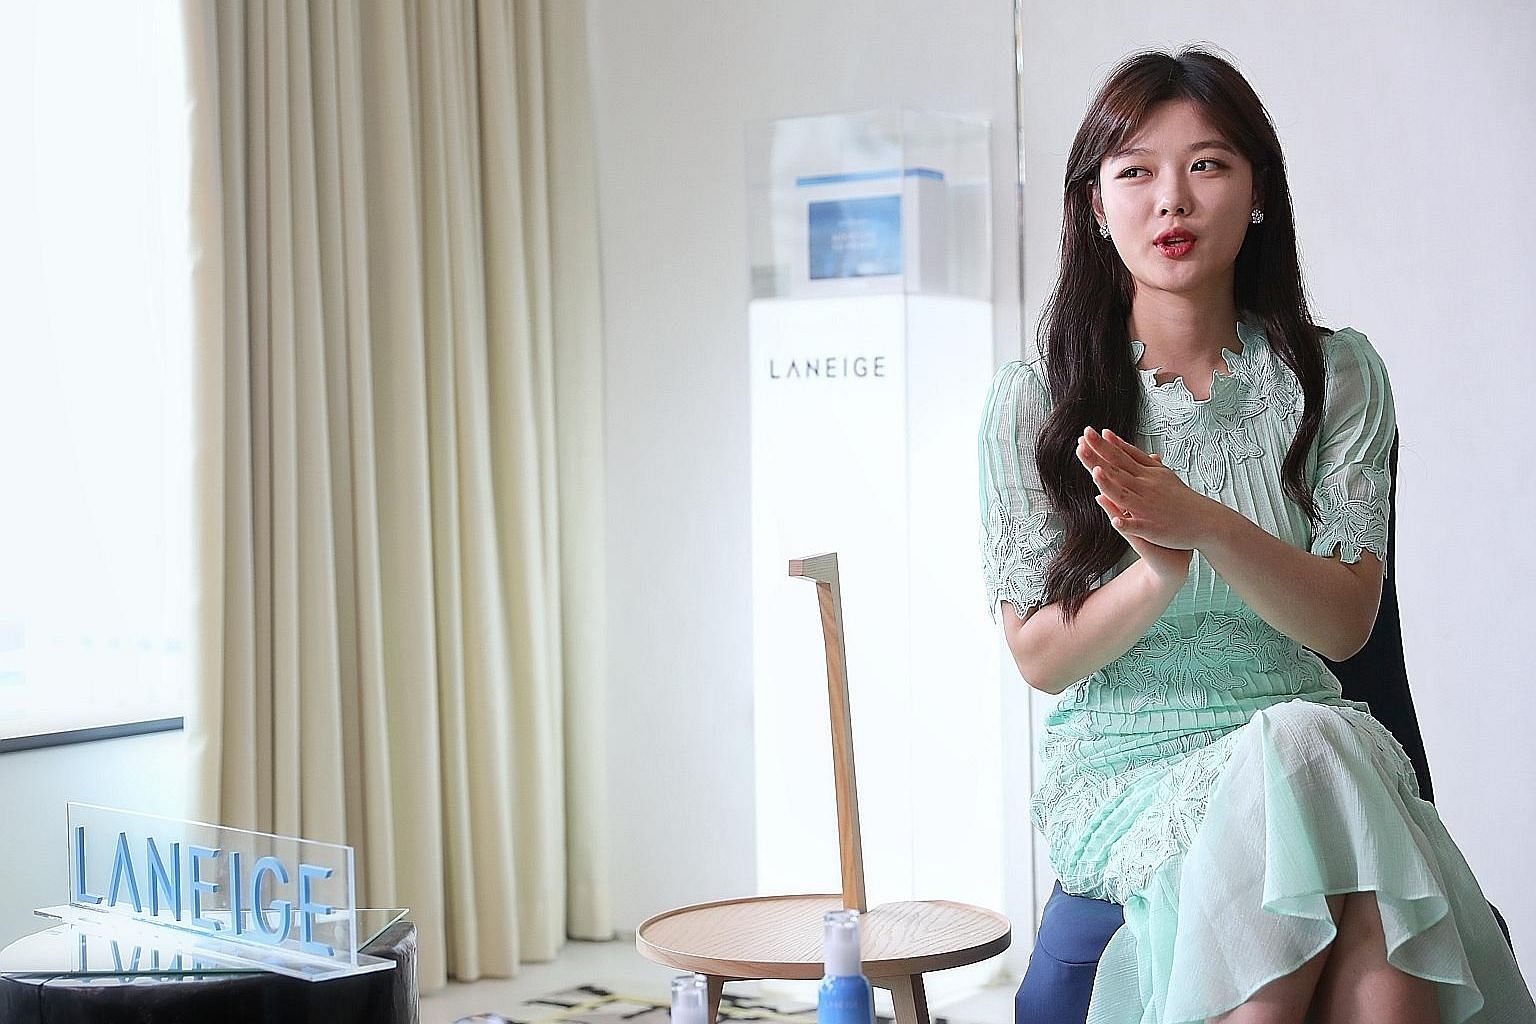 Actress Kim Yoo-jung has taken over from K-drama actress Song Hye-kyo as the new face of Laneige products.